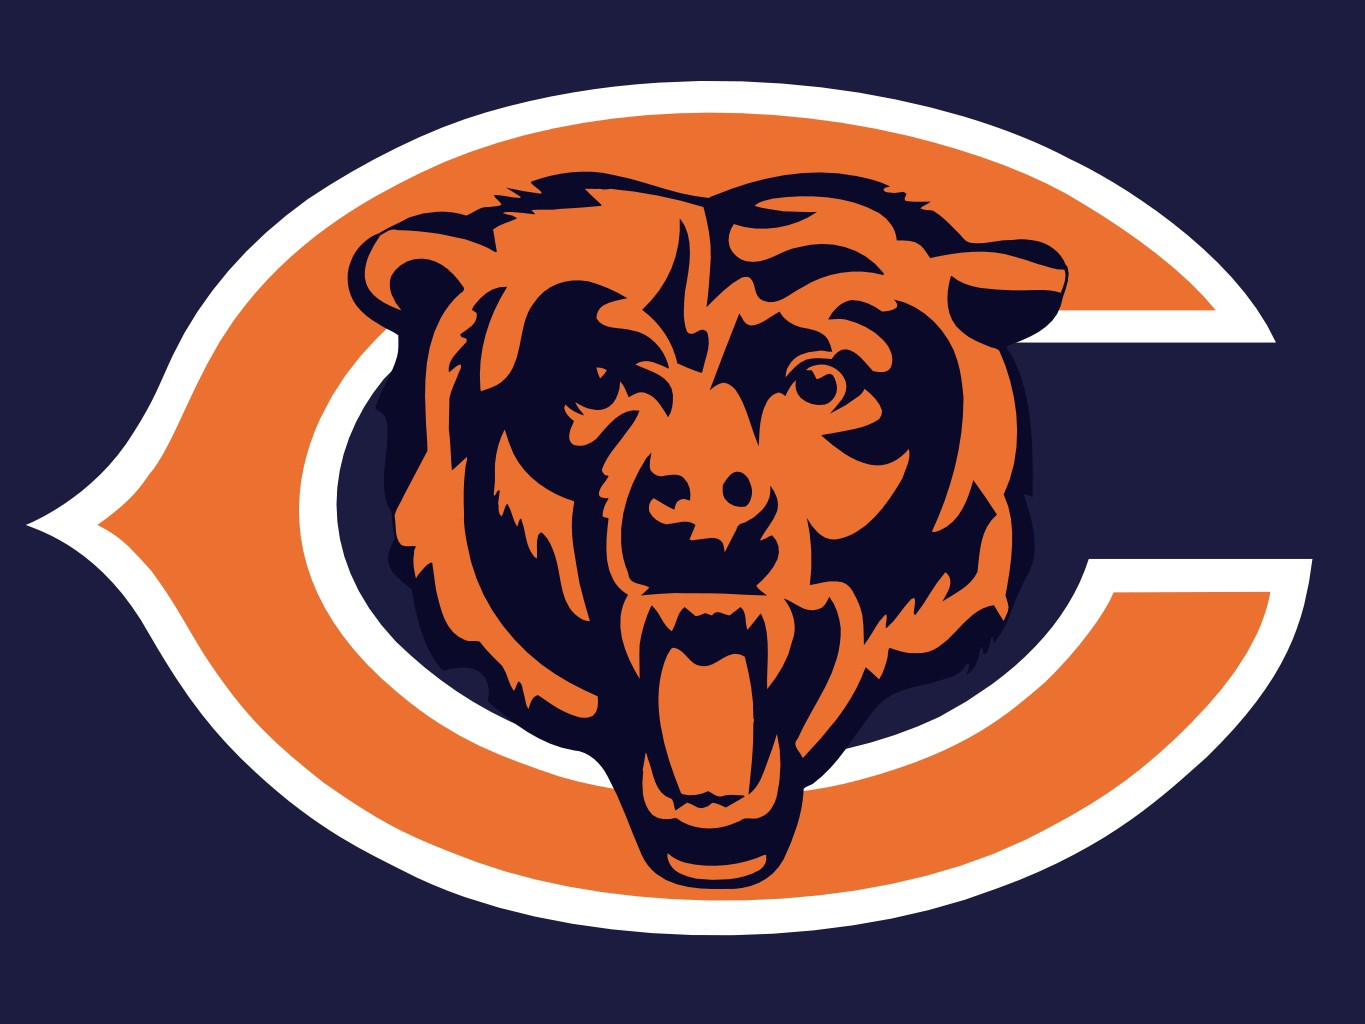 Limousine Service to Soldier Field, Sedan Service to Soldier Field, Chicago Bears Group Trips, Limo Transportation, Shuttle Bus Transportation, Shuttle Bus Transportation to Bears Games. Sedan, SUV, Van, Shuttle Bus, Party Bus, Stretch Limo, Limousine. 773-992-0902